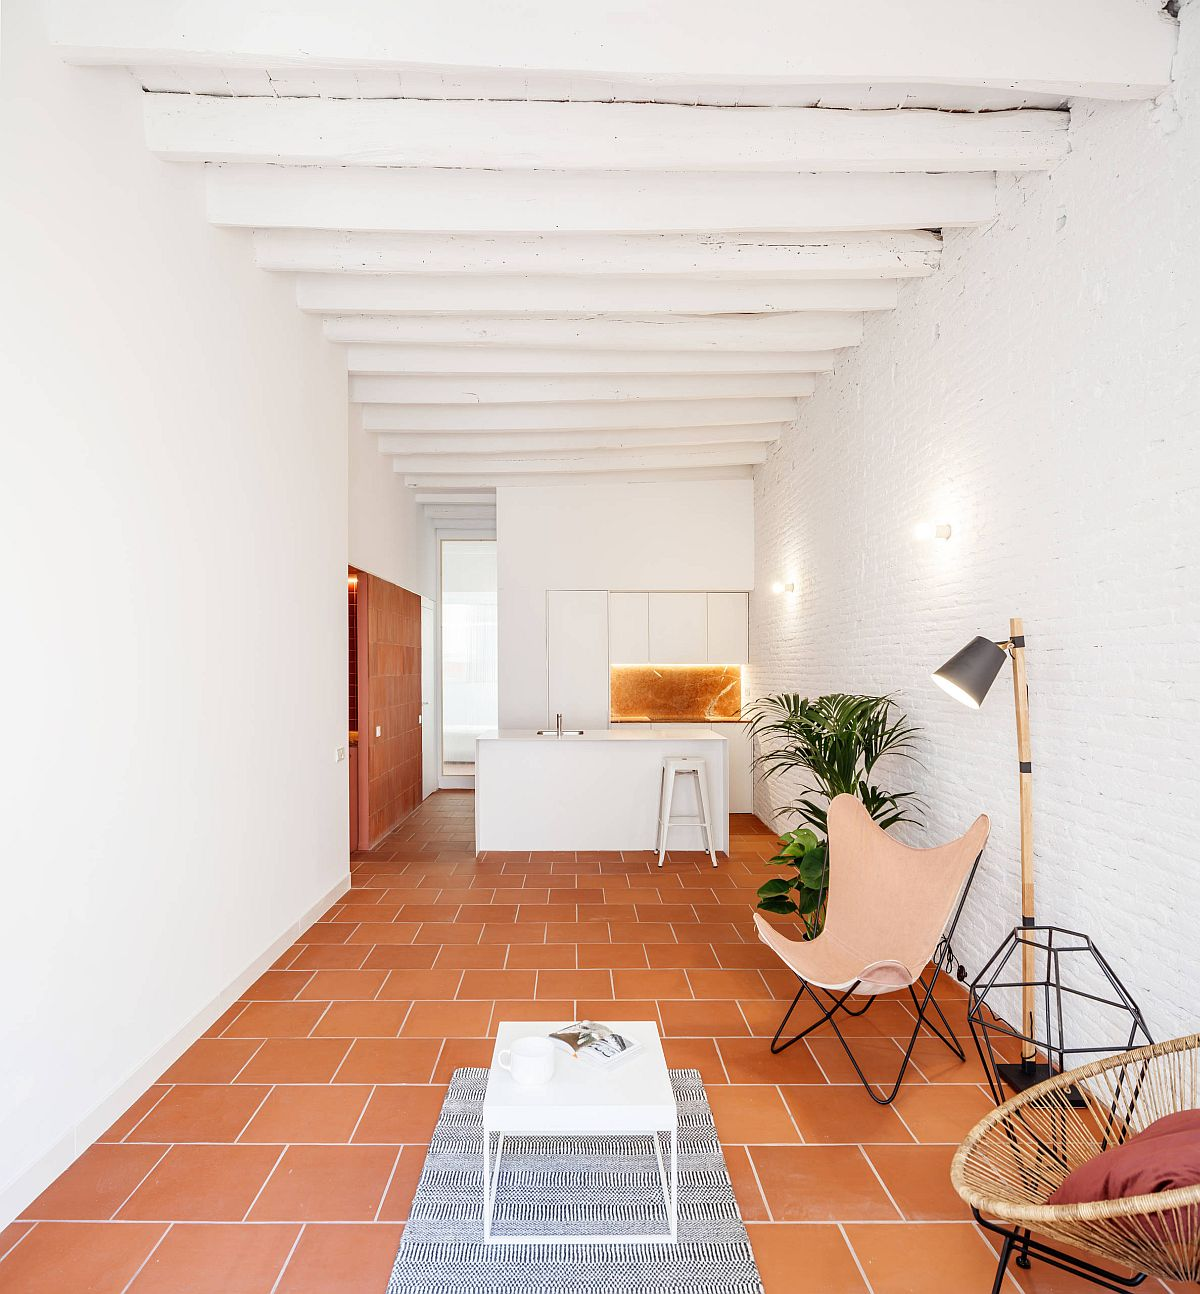 Modern living room of Barcelona apartment with white brick walls and terracotta tile floor